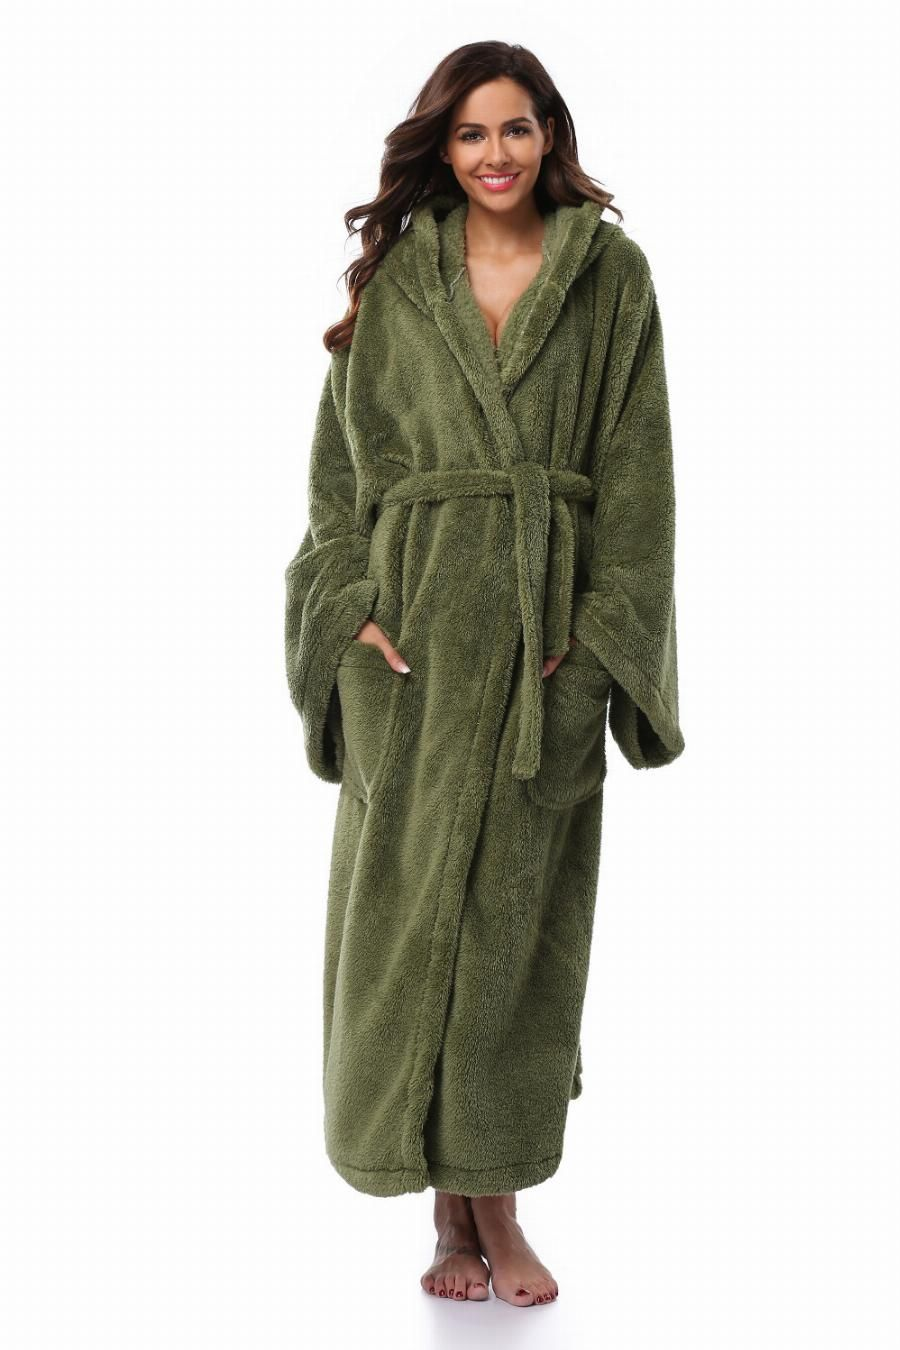 a670749537 Winter Thick Warm Women Robes 2017 Coral Fleece Sleepwear Long Robe Woman  Hotel Spa Plush Long Hooded Bathrobe Nightgown Kimono